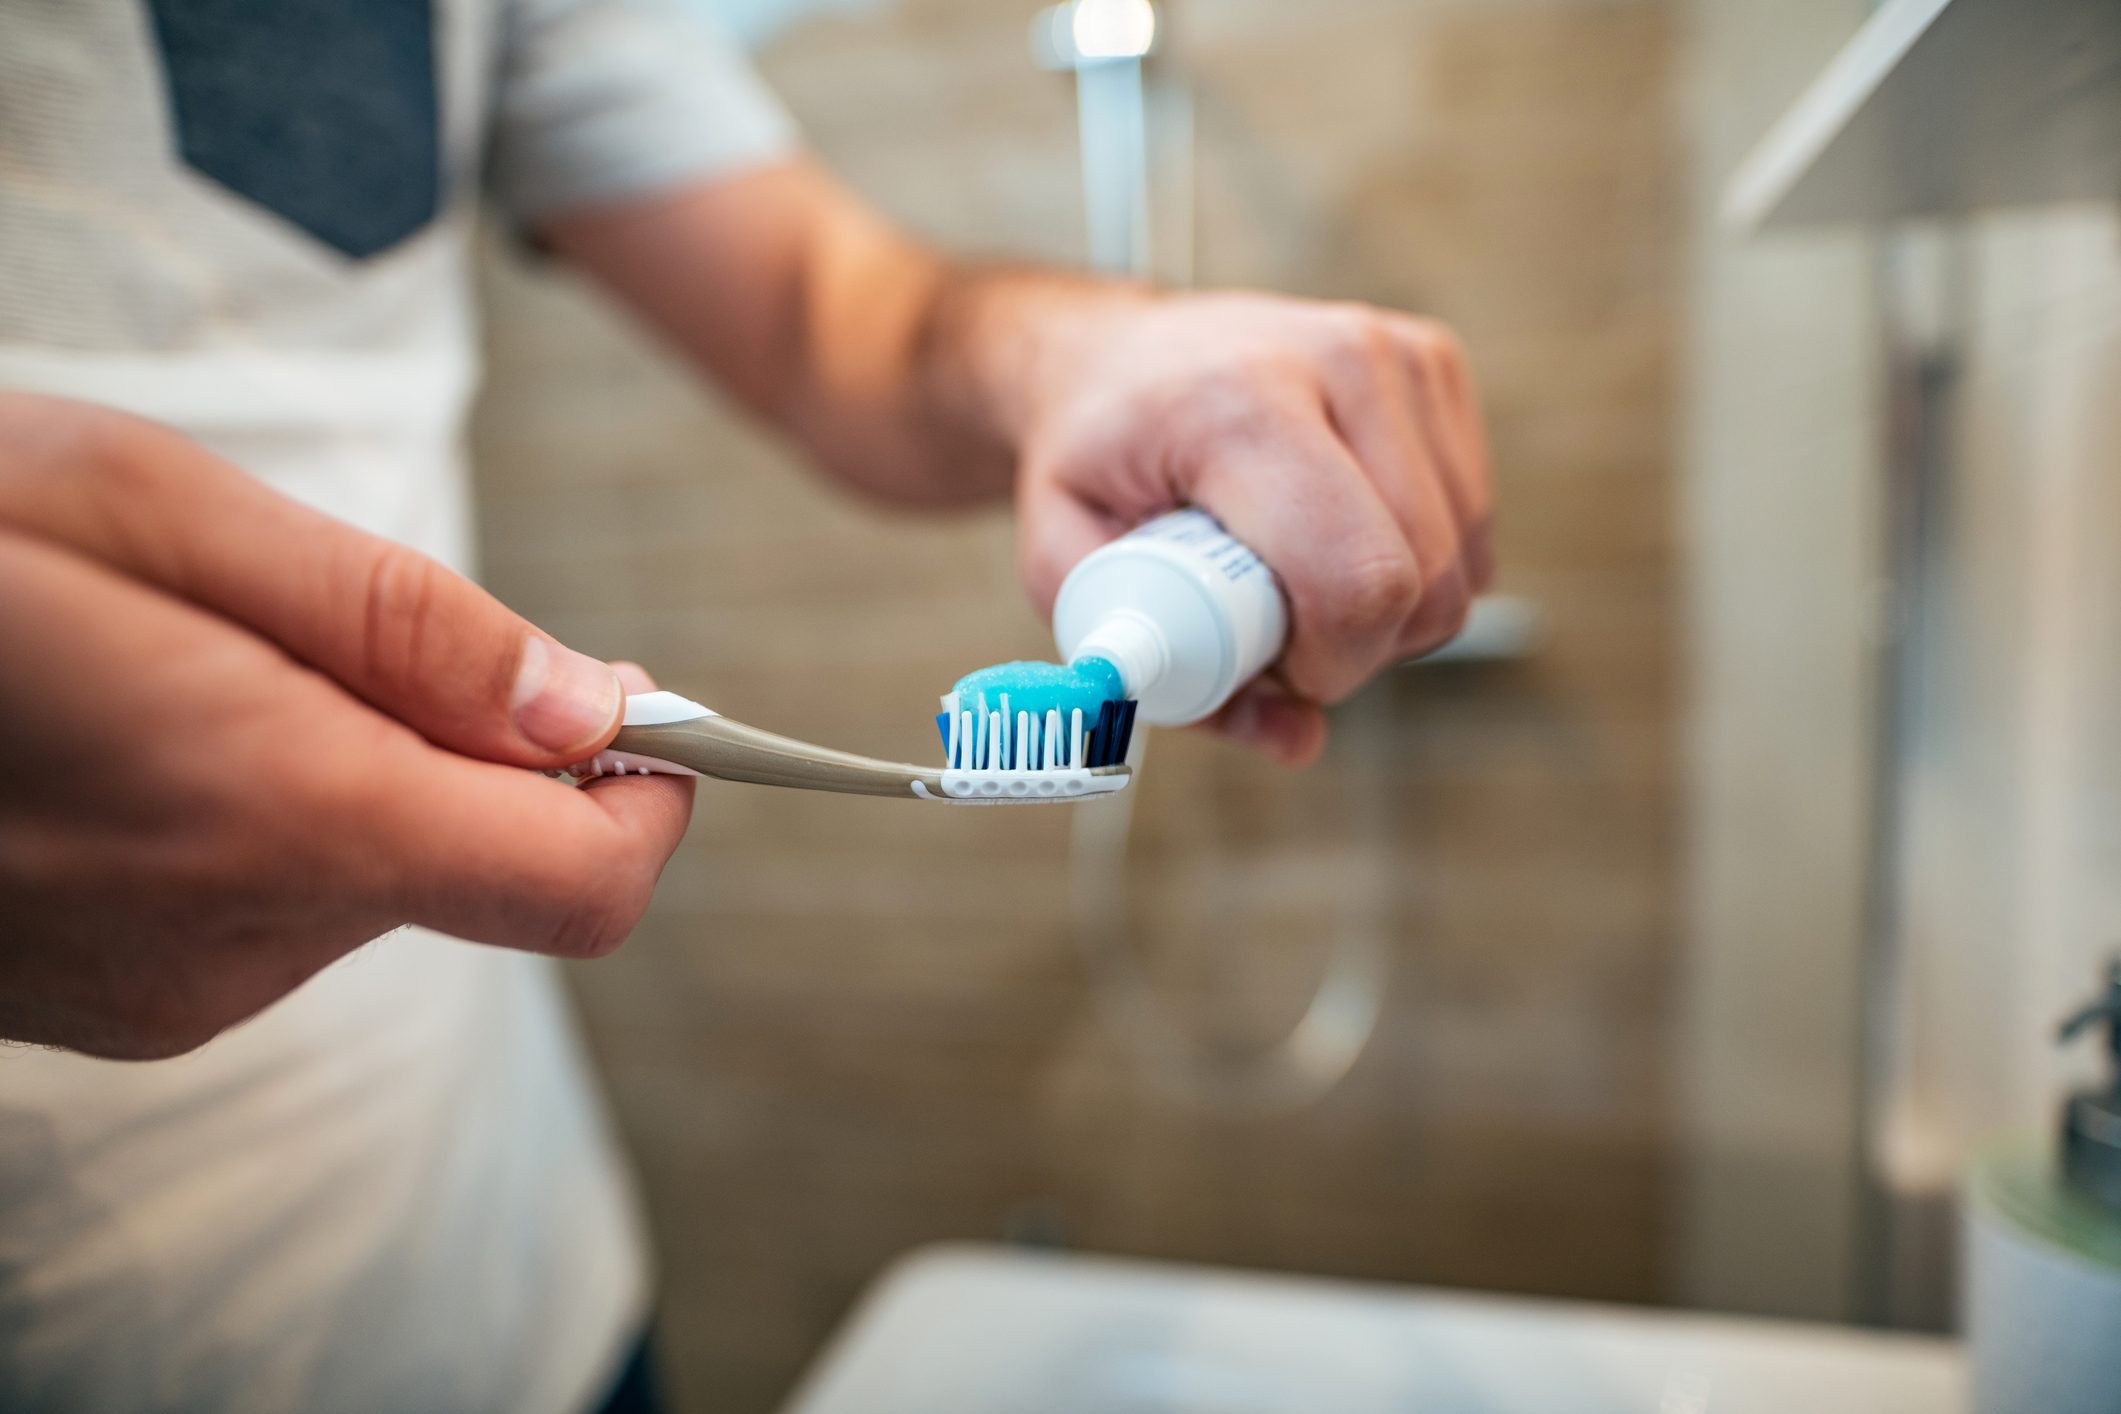 Dental health care concept. Close-up of man squeezes toothpaste on the toothbrush.